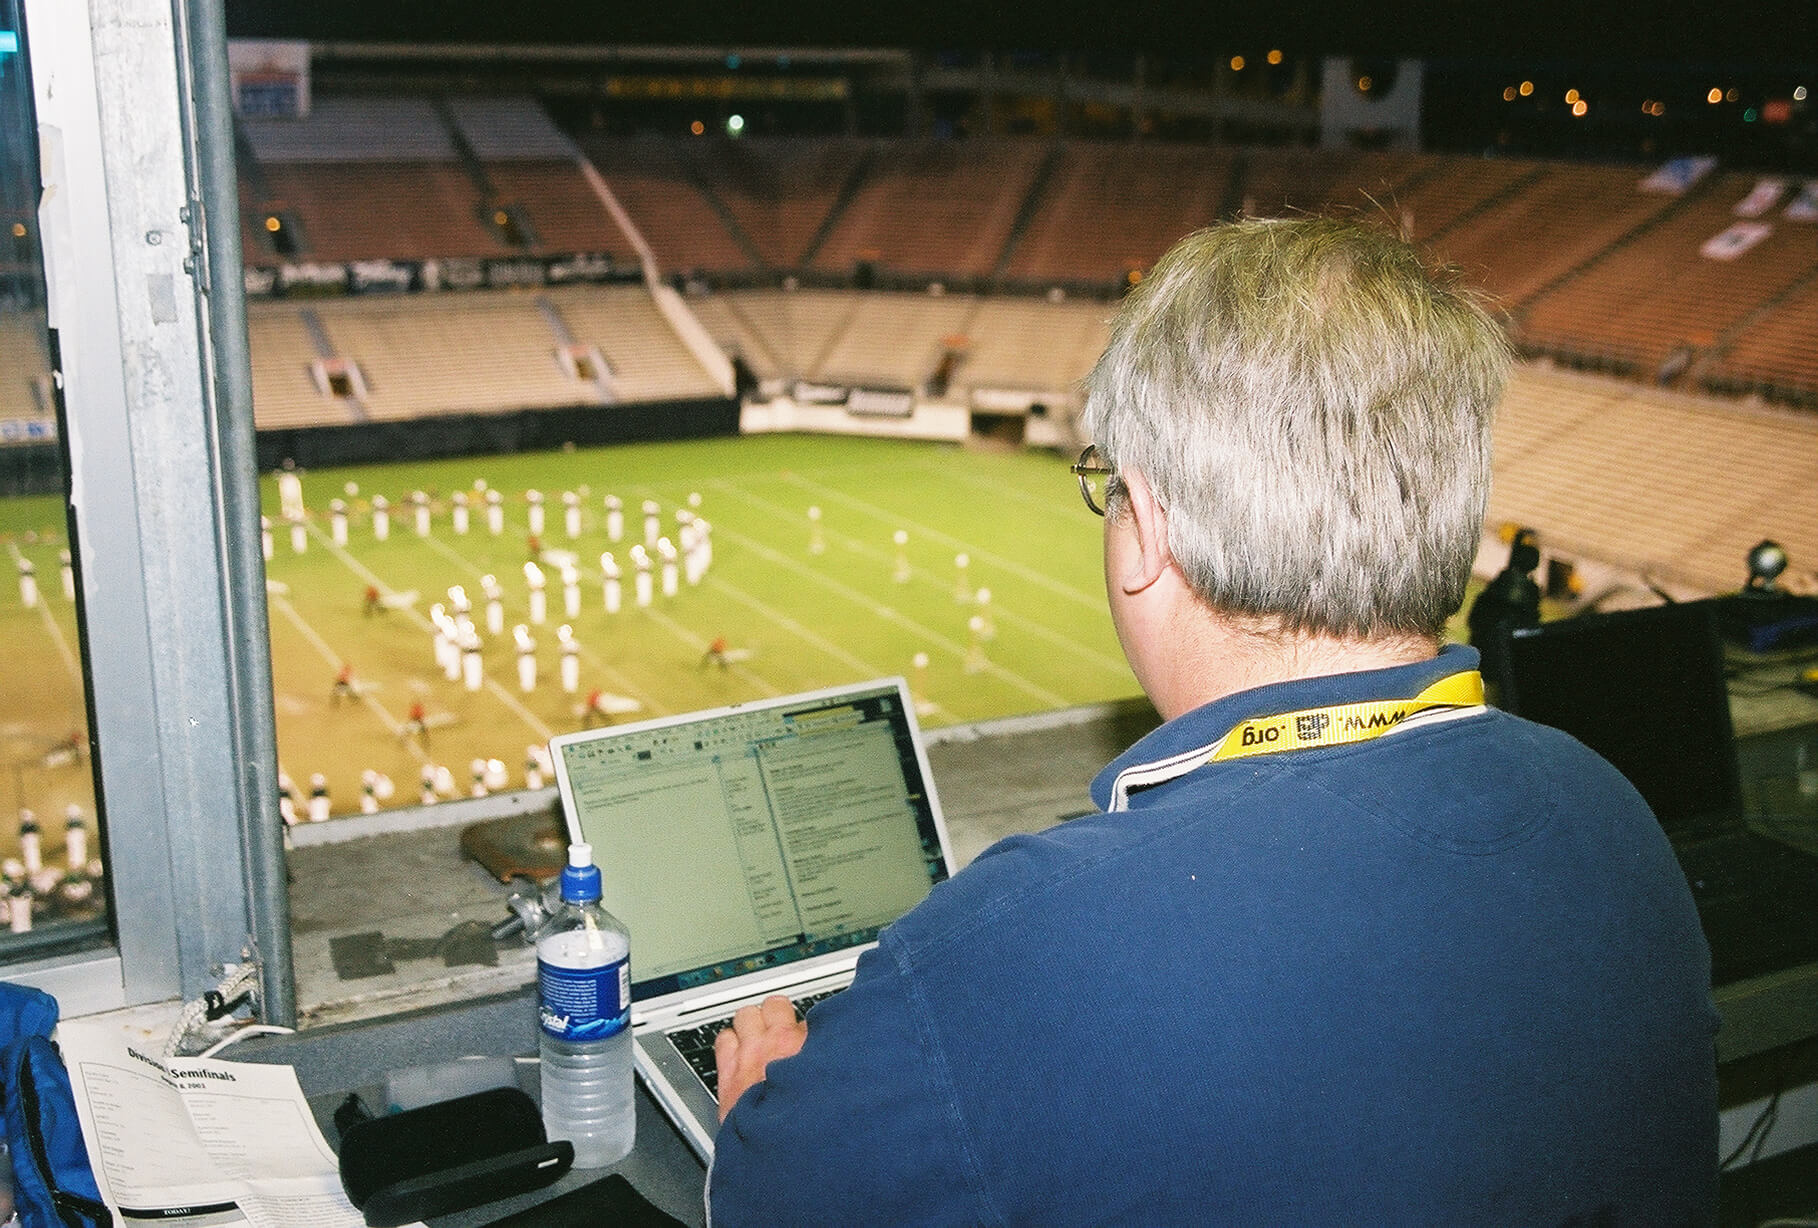 Remembering longtime Drum Corps International staff writer Michael Boo